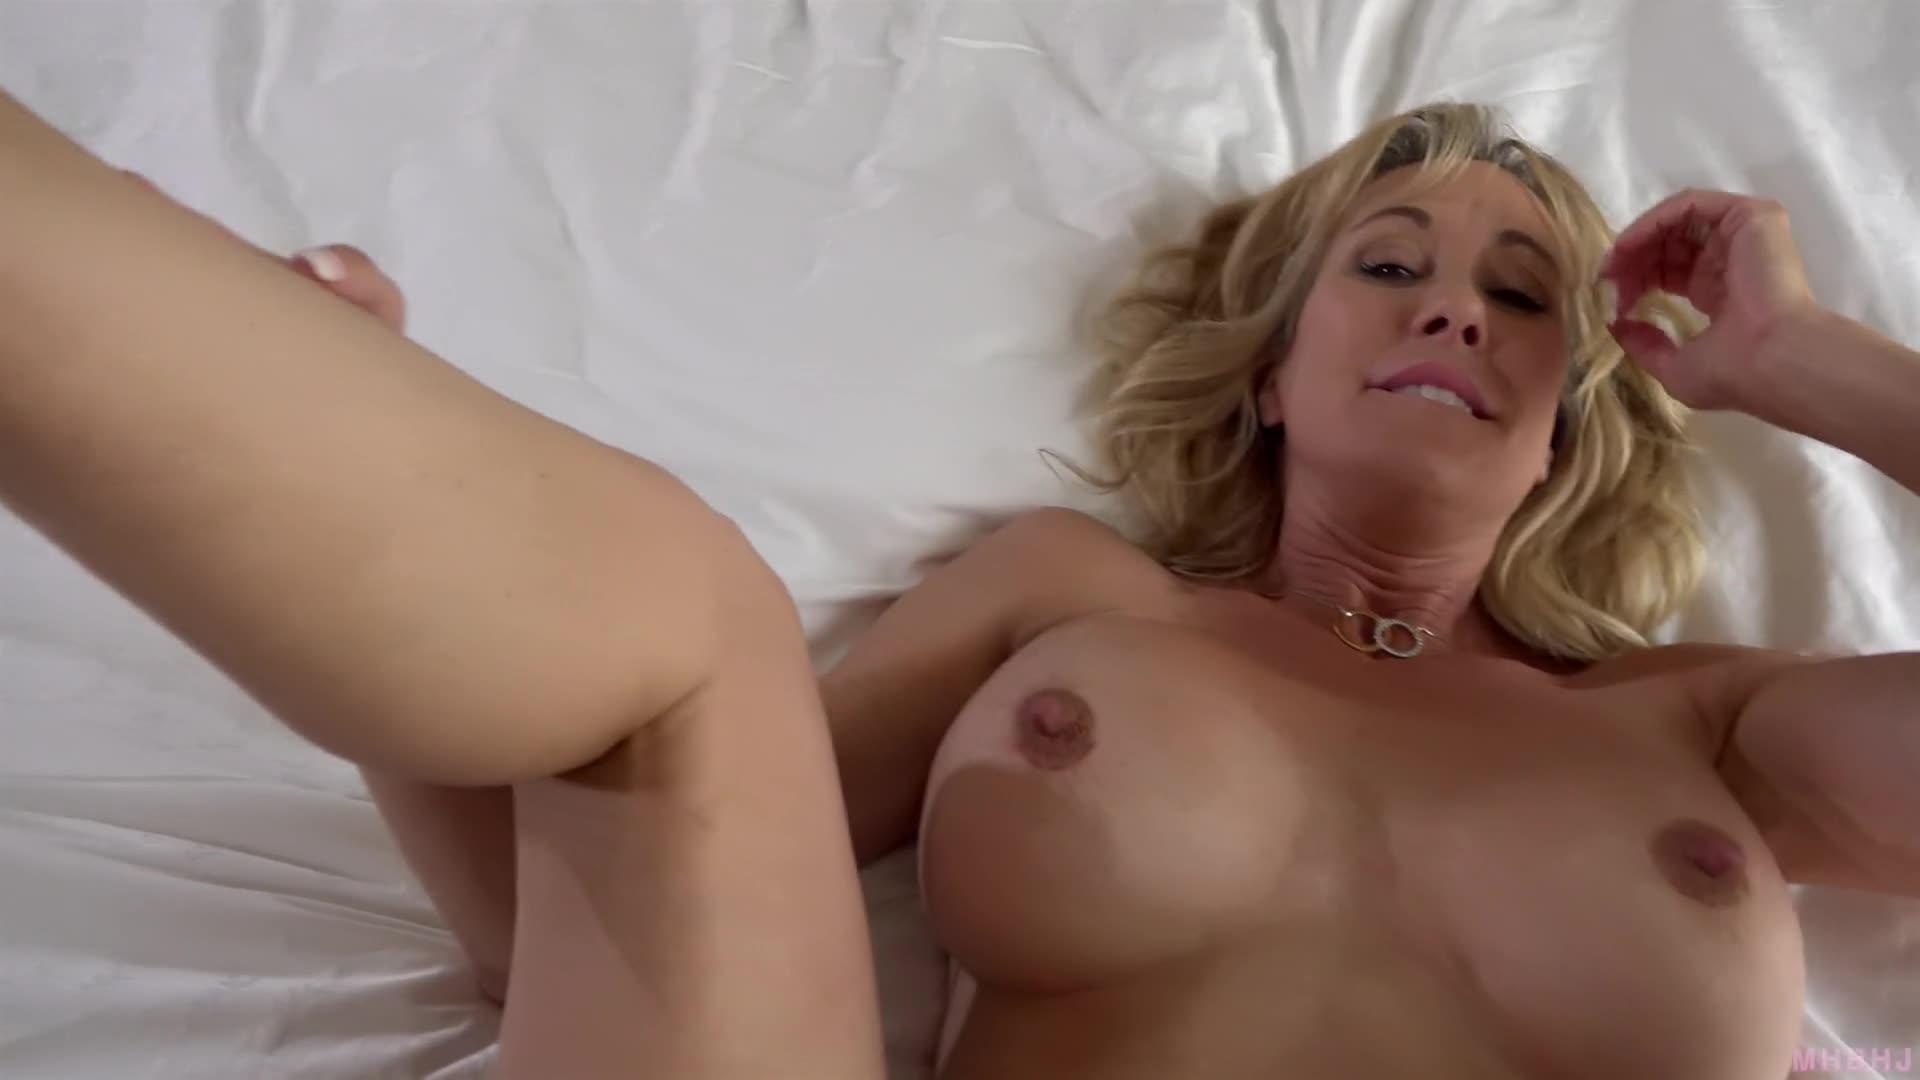 The Big Tit Leather Milf